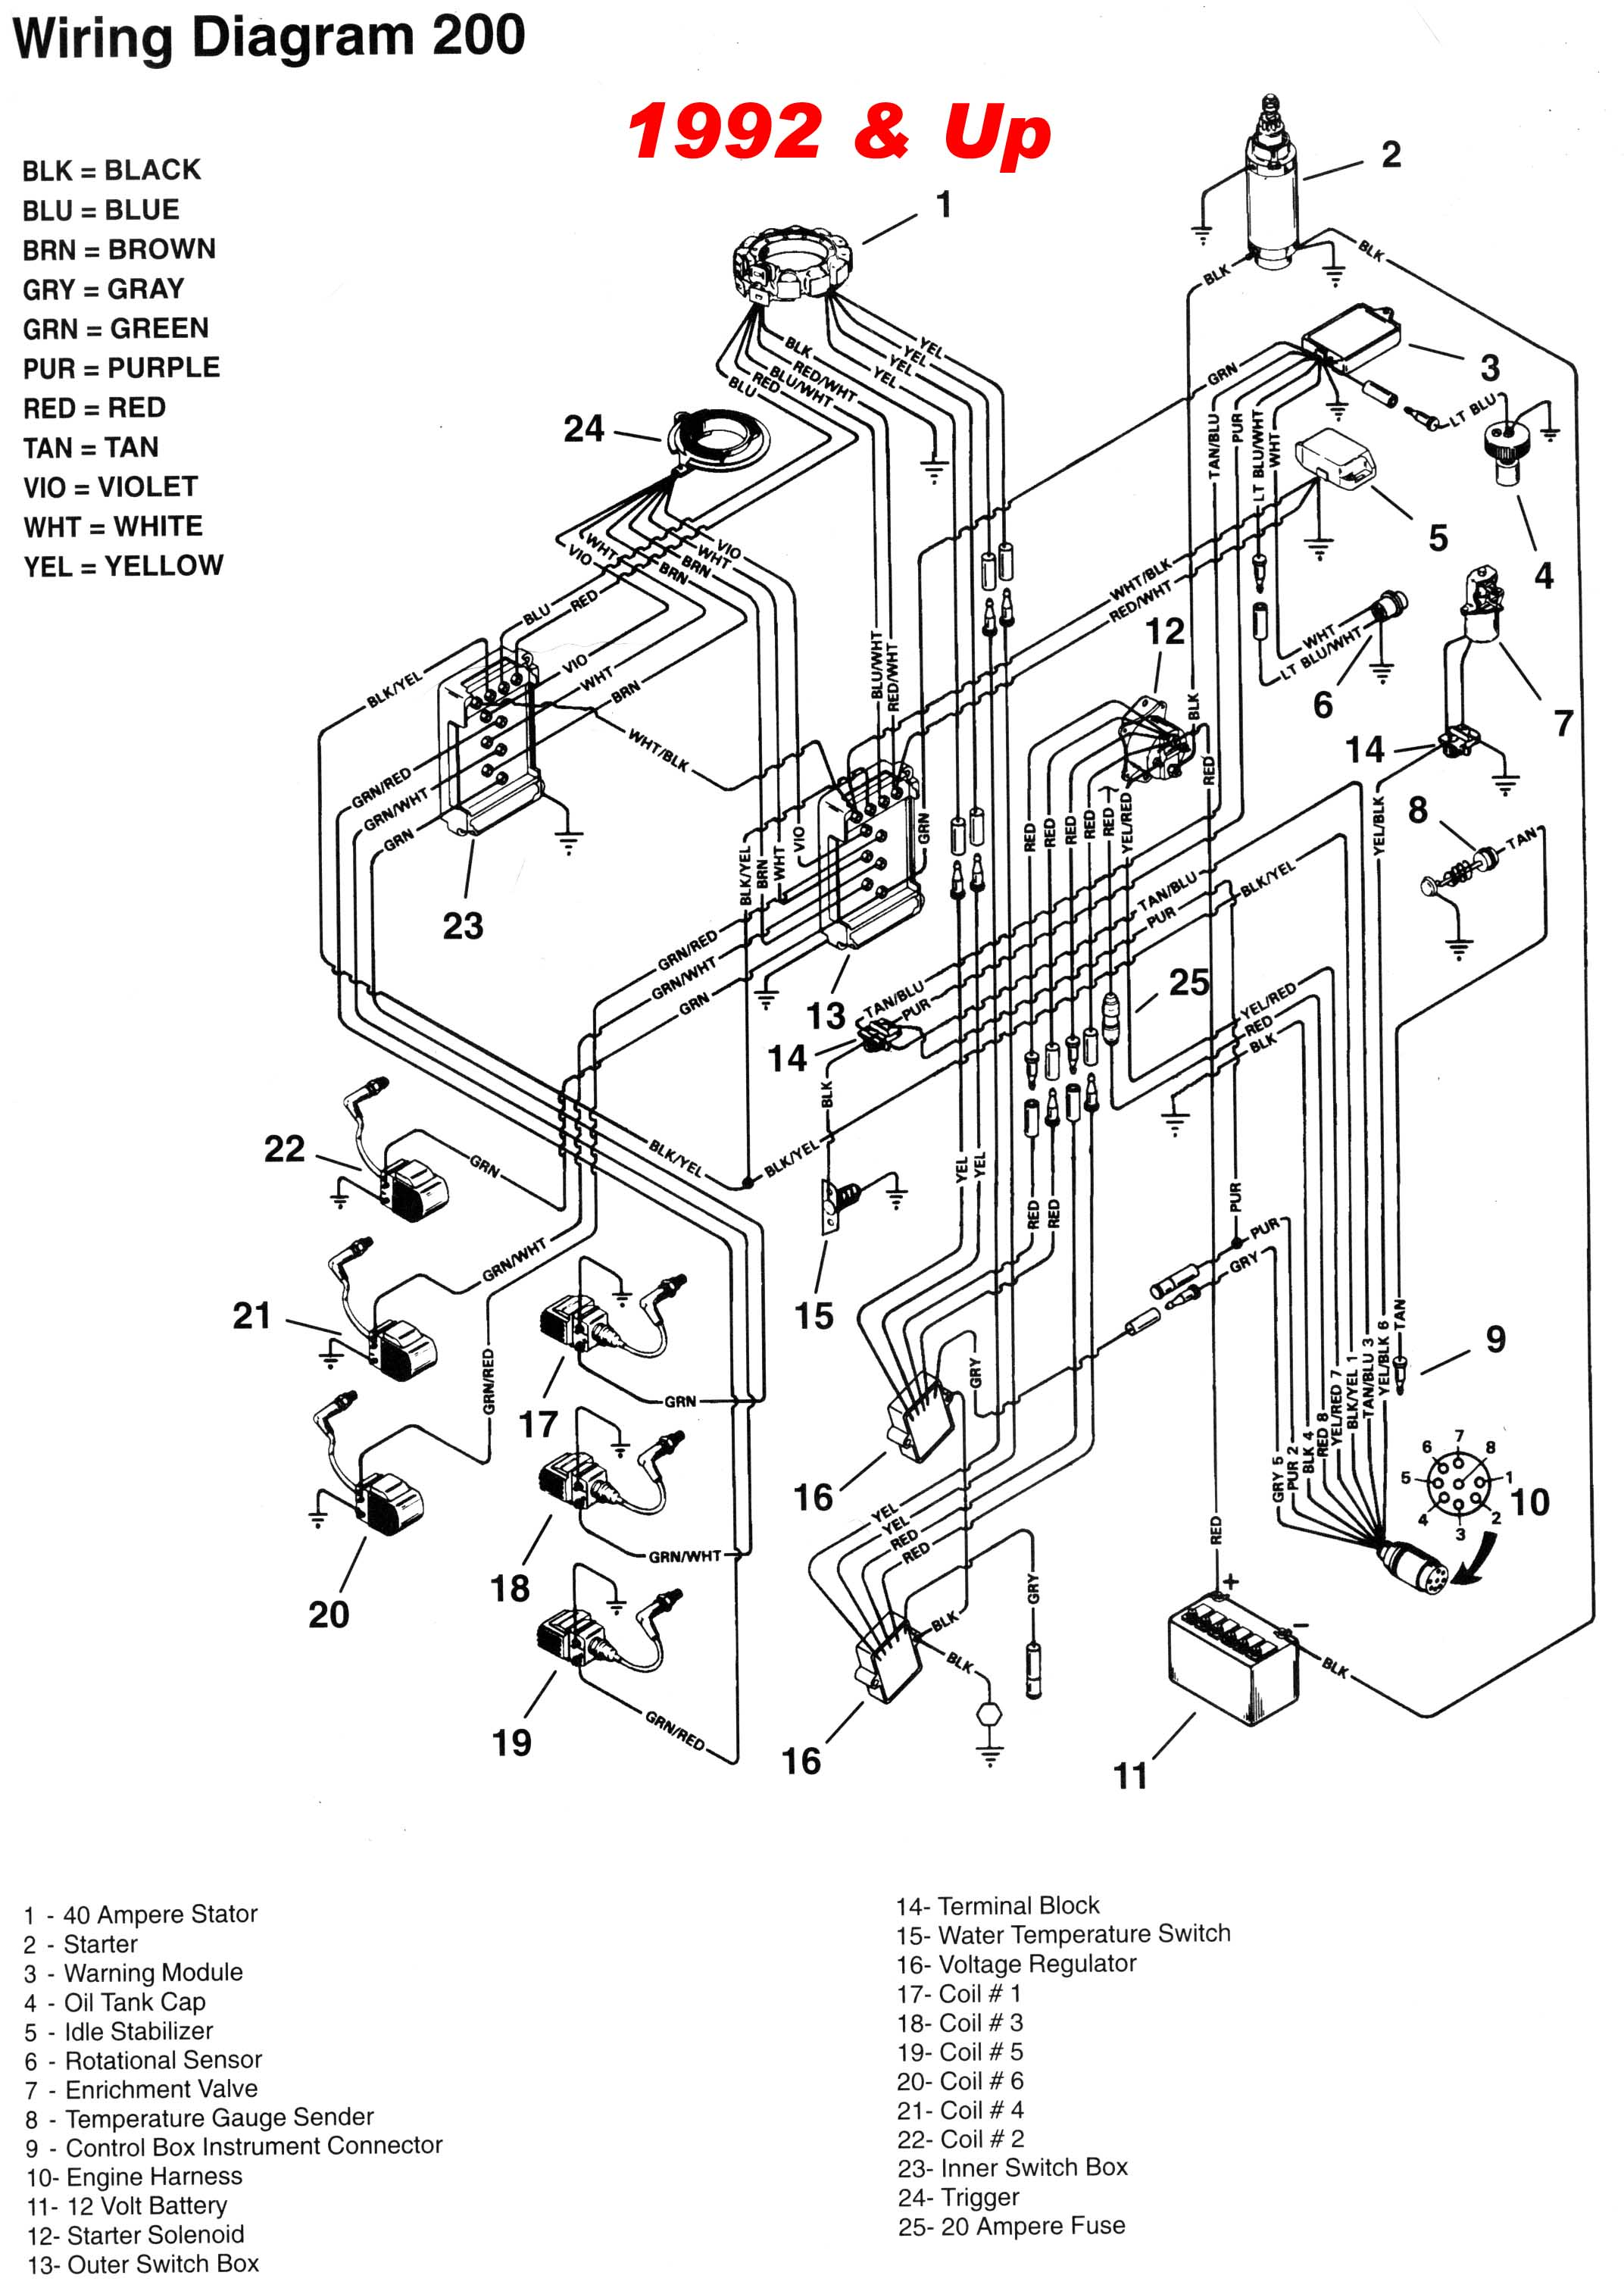 mercury_92up_200_wiring mercury outboard 2 5 and 3 0l v6 and gearcase faq mercury 14 pin wiring harness diagram at sewacar.co